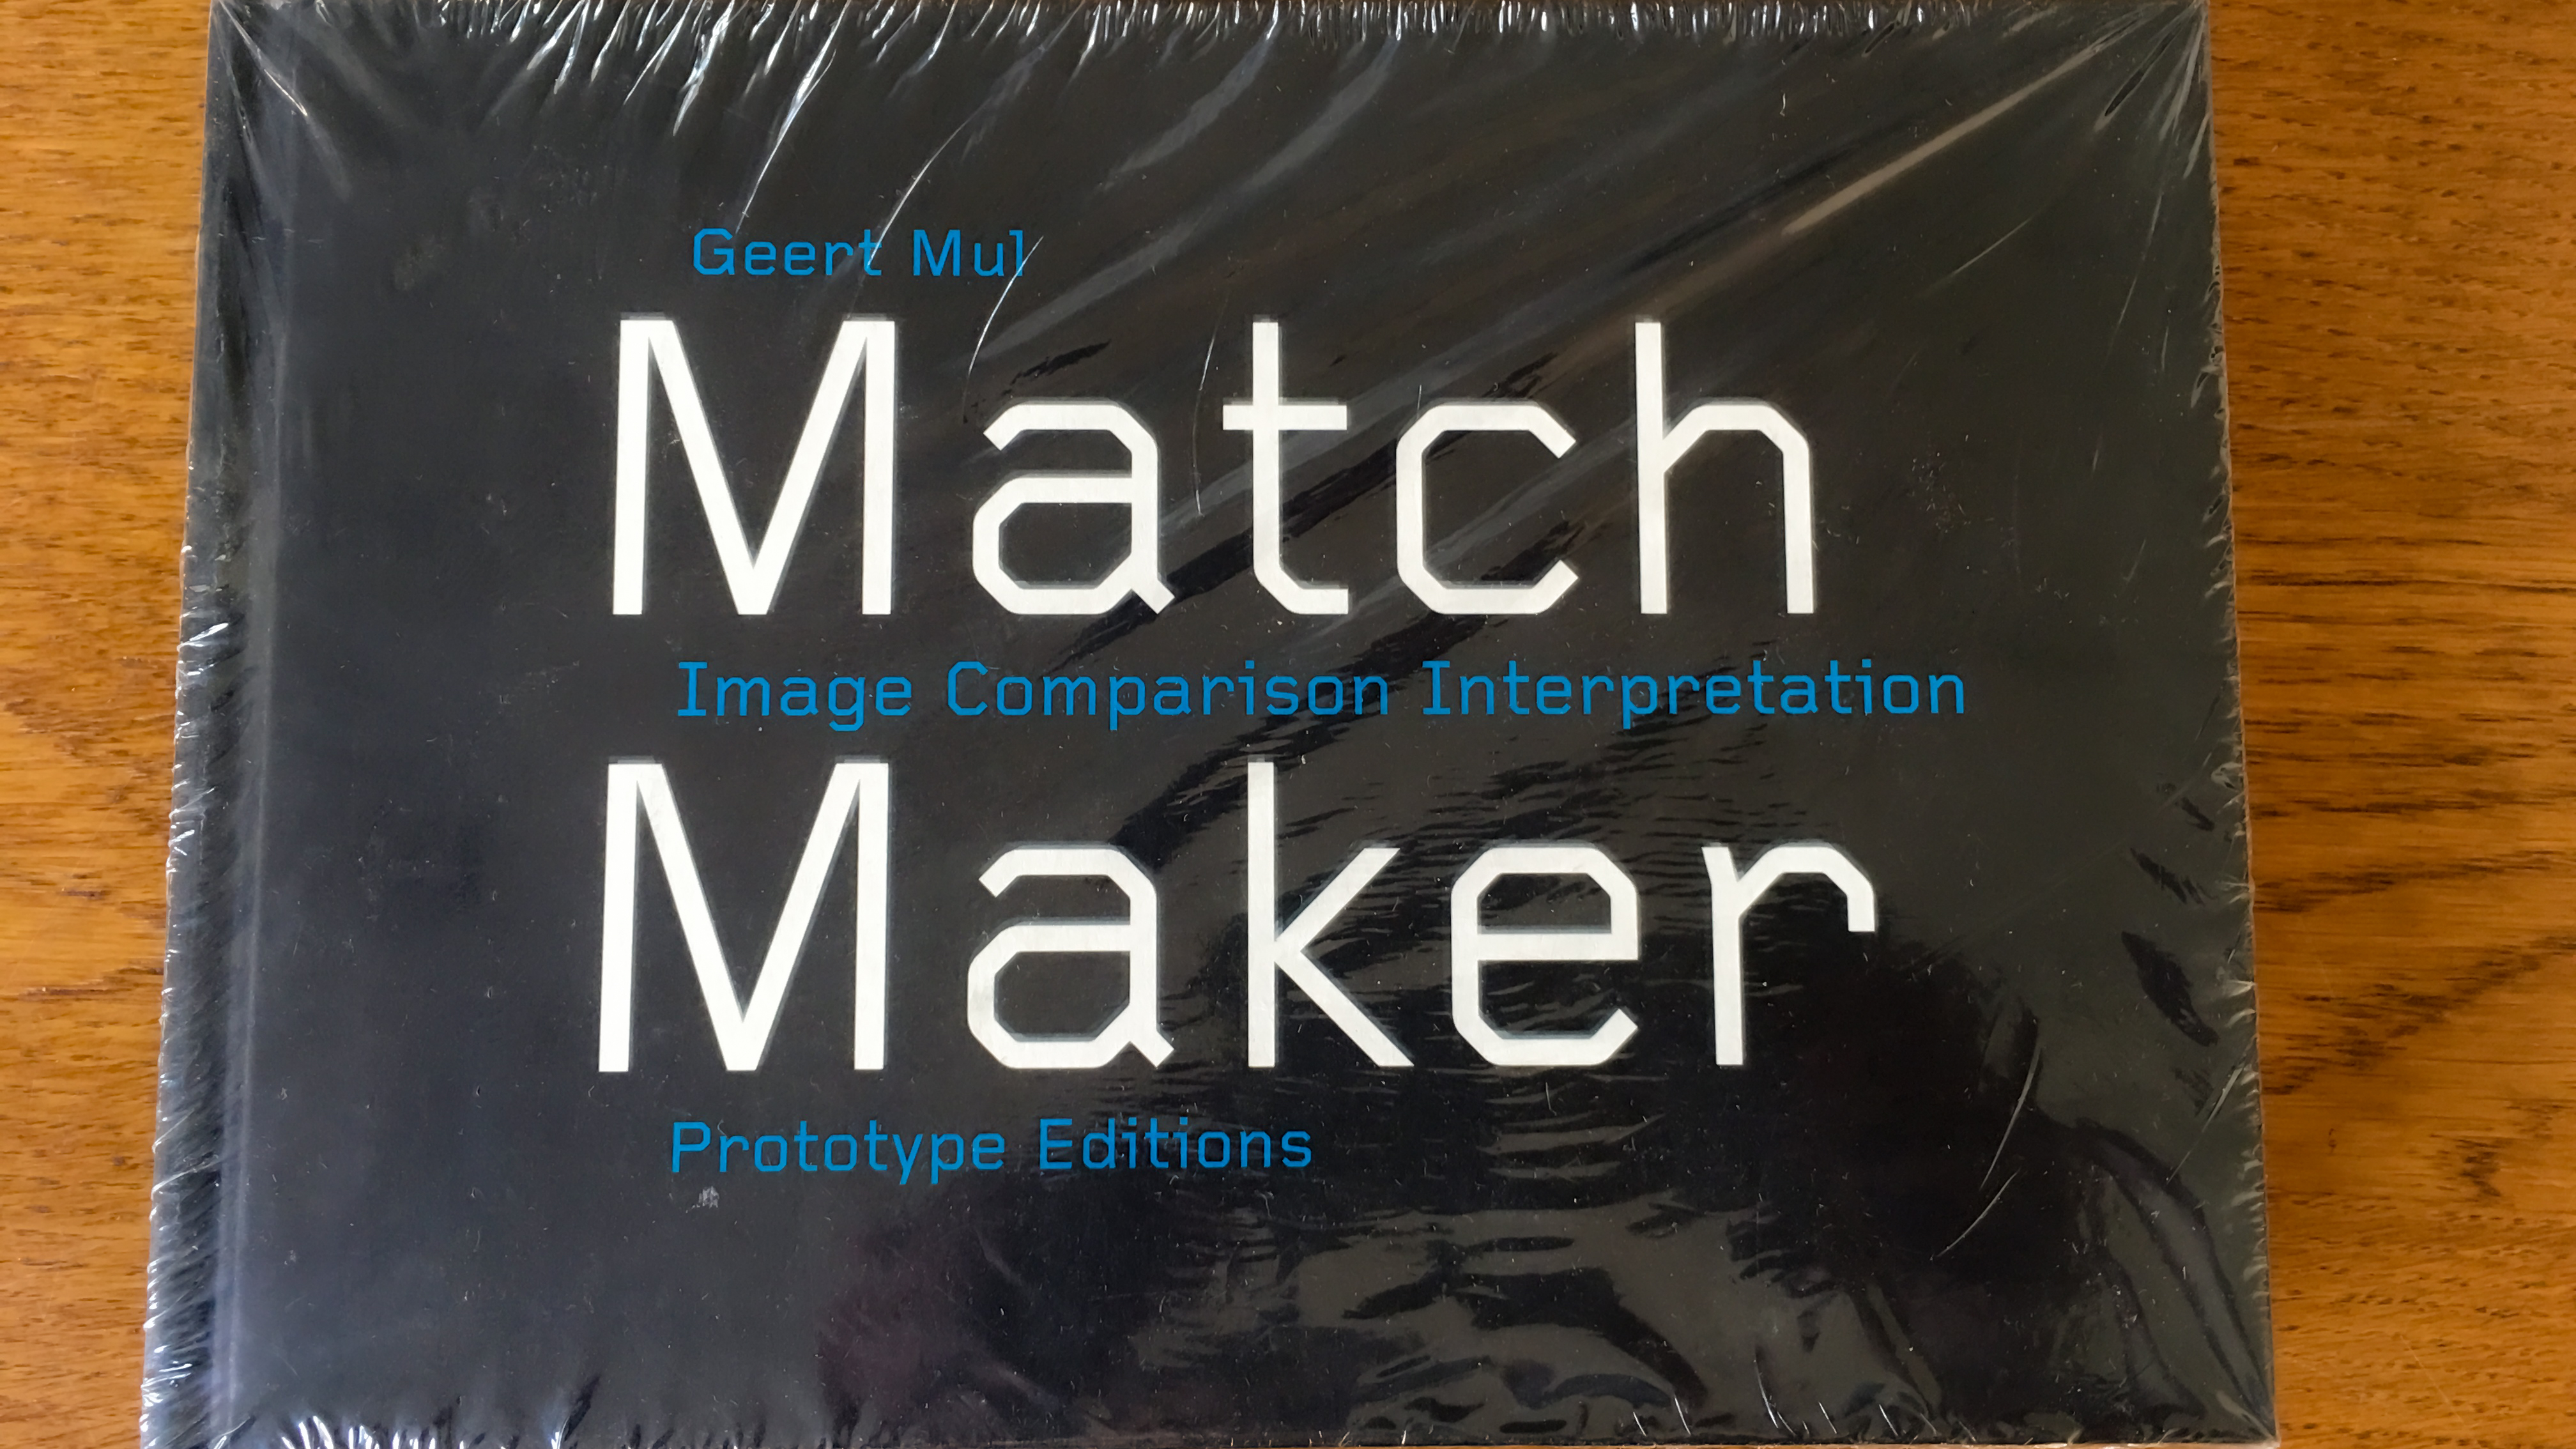 Match Maker: Image Comparison Interpretation October, 2005 by Geert Mul